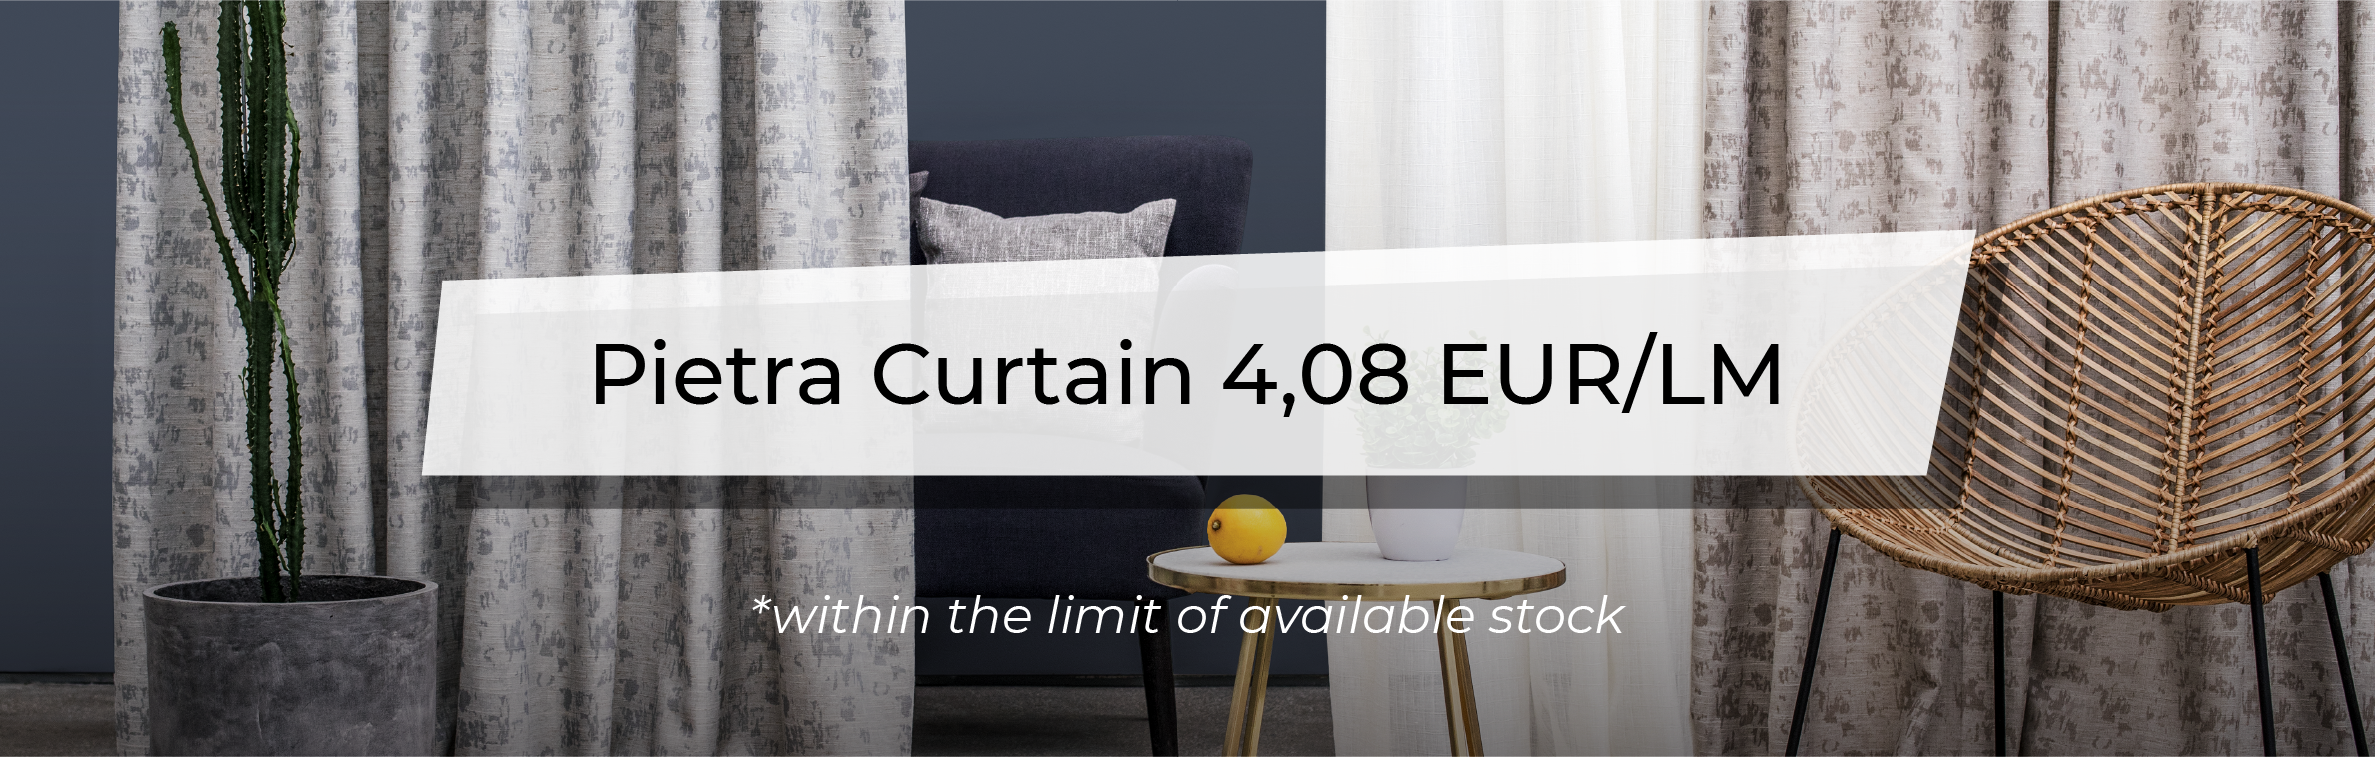 December Promotions - Pietra Curtain